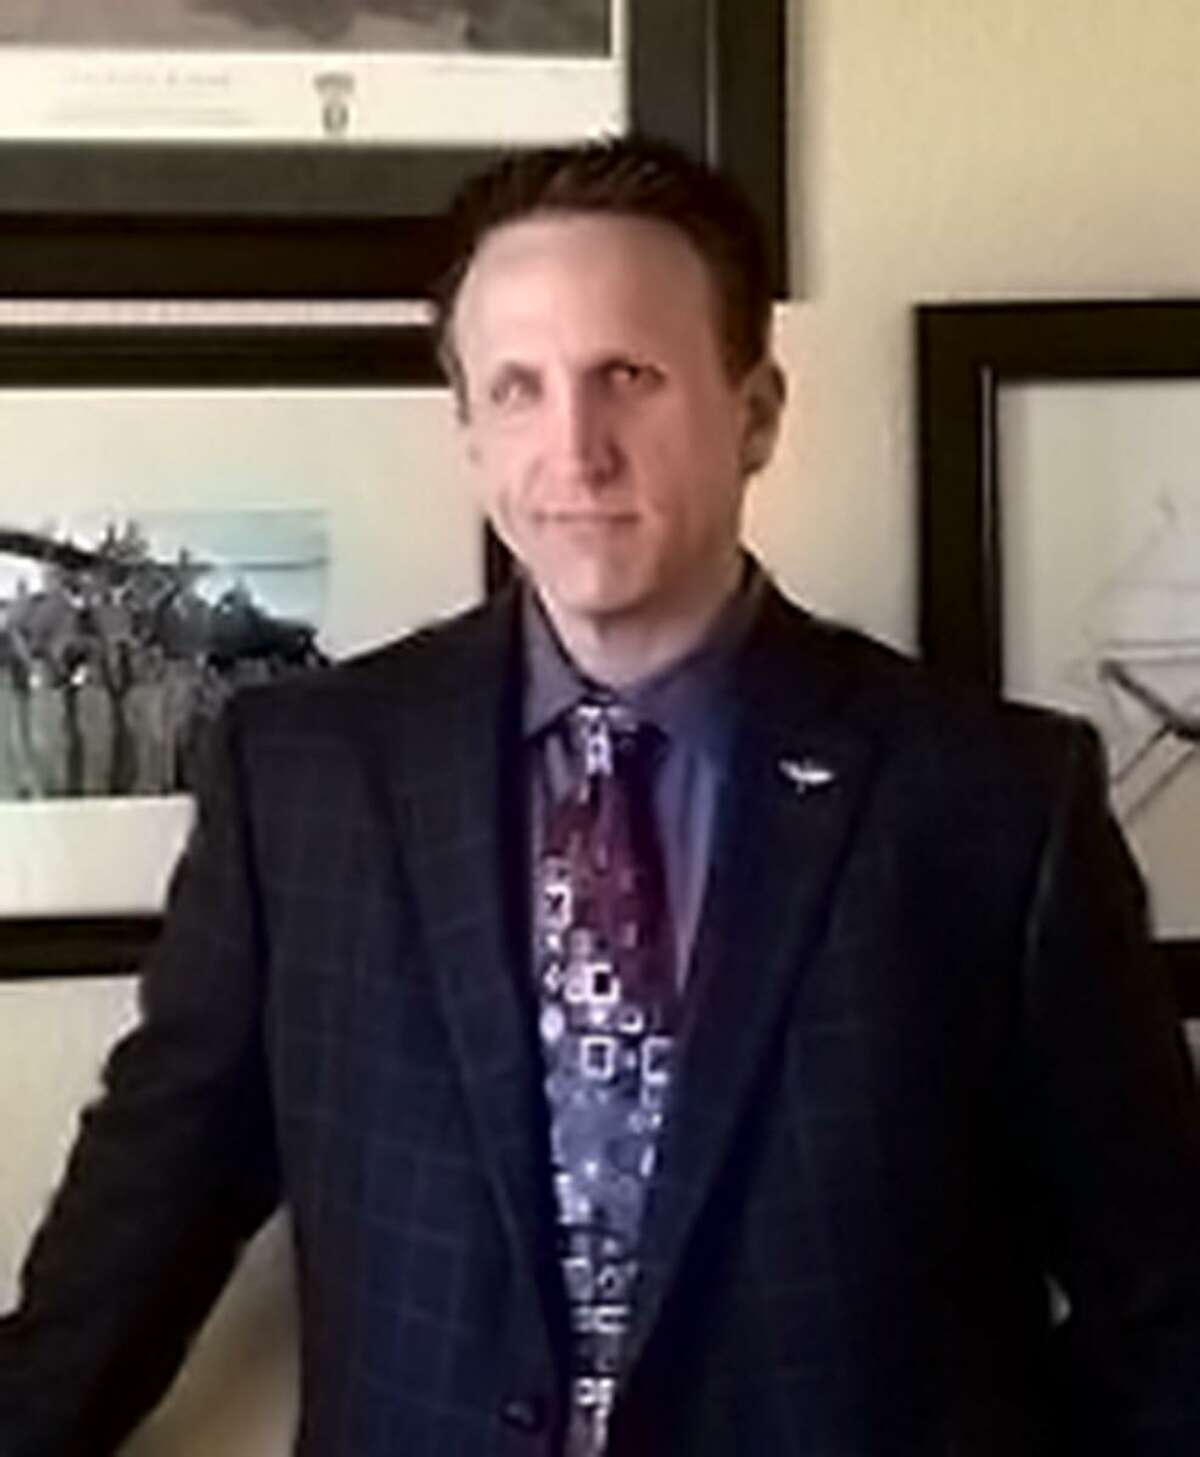 Tom Caldwell, county attorney for Wilson County, threw a lifeline to disgraced San Antonio police officer Matthew Martin after he was indefinitely suspended for allegedly tampering with evidence in a drug arrest. Caldwell hired Martin as an investigator.